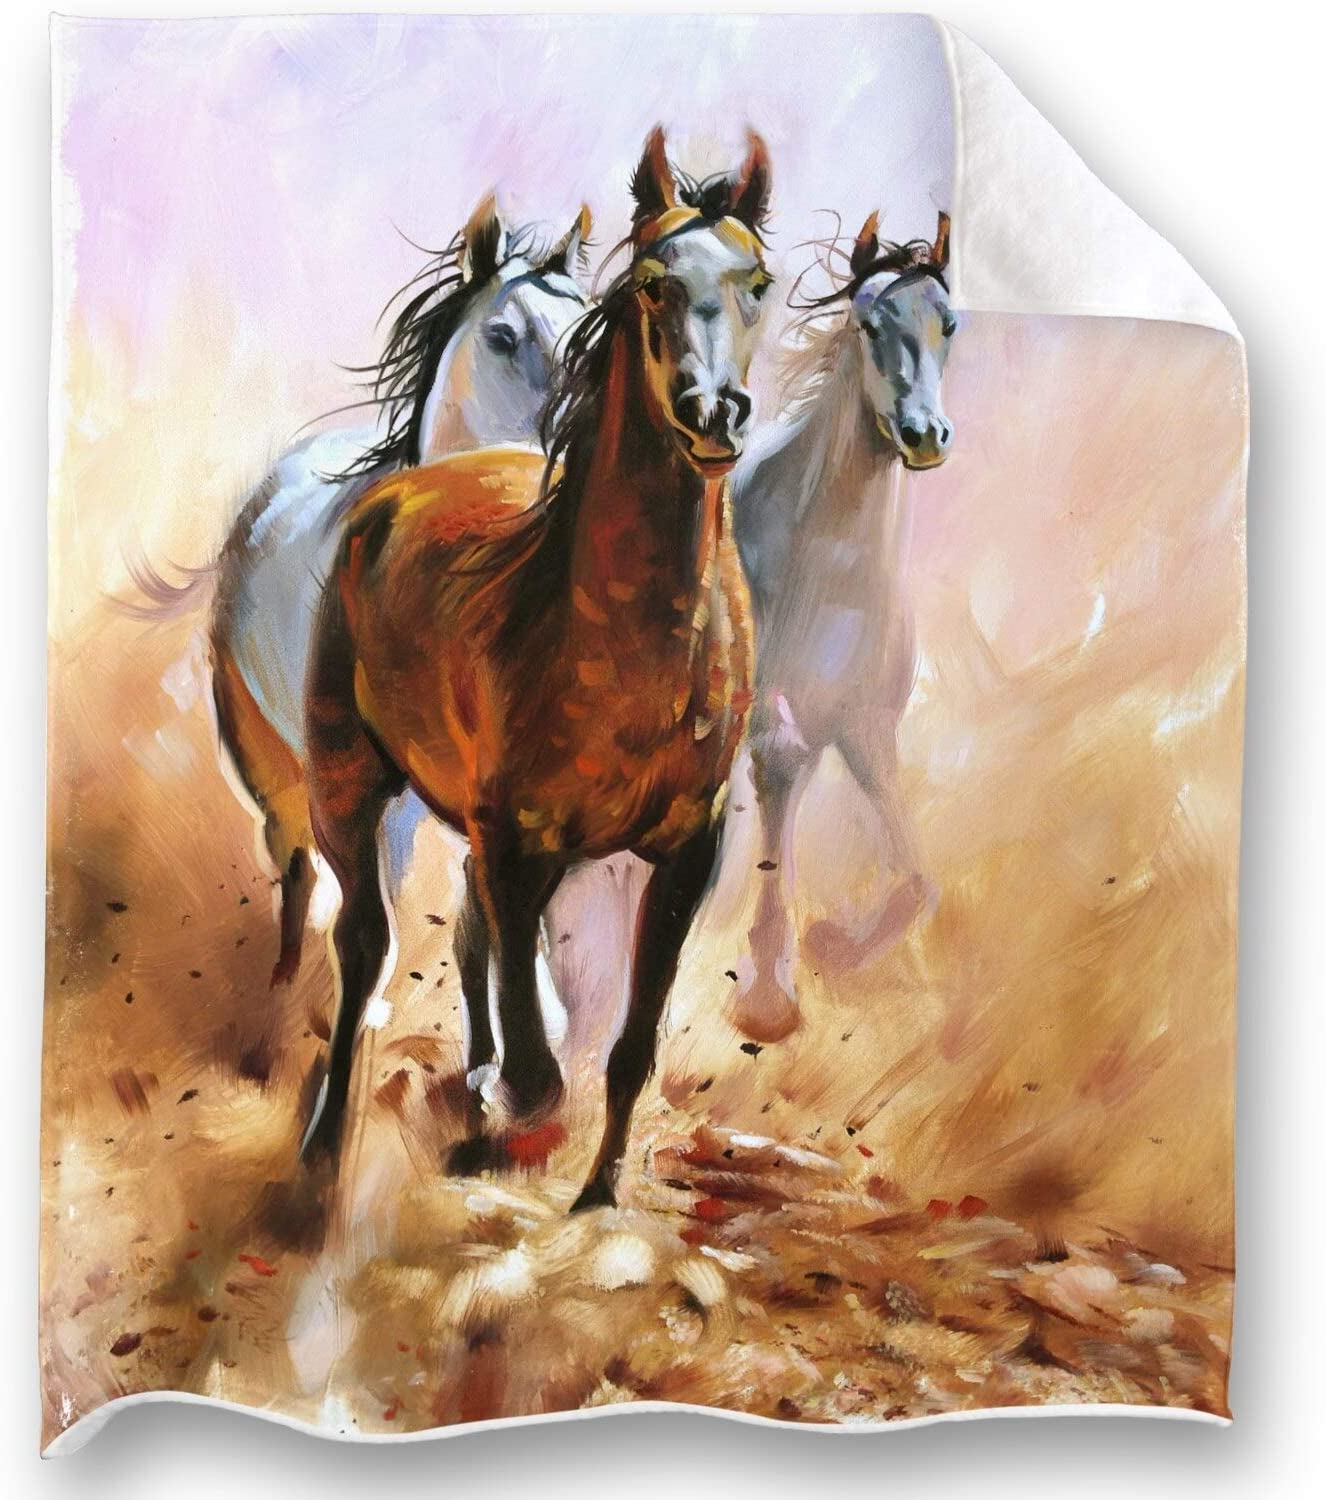 Loong Design Horse Throw Blanket Soft Fluffy Premium Sherpa Fleece Blanket 50'' x 60'' Fit for Sofa Chair Bed Office Travelling Camping Gift